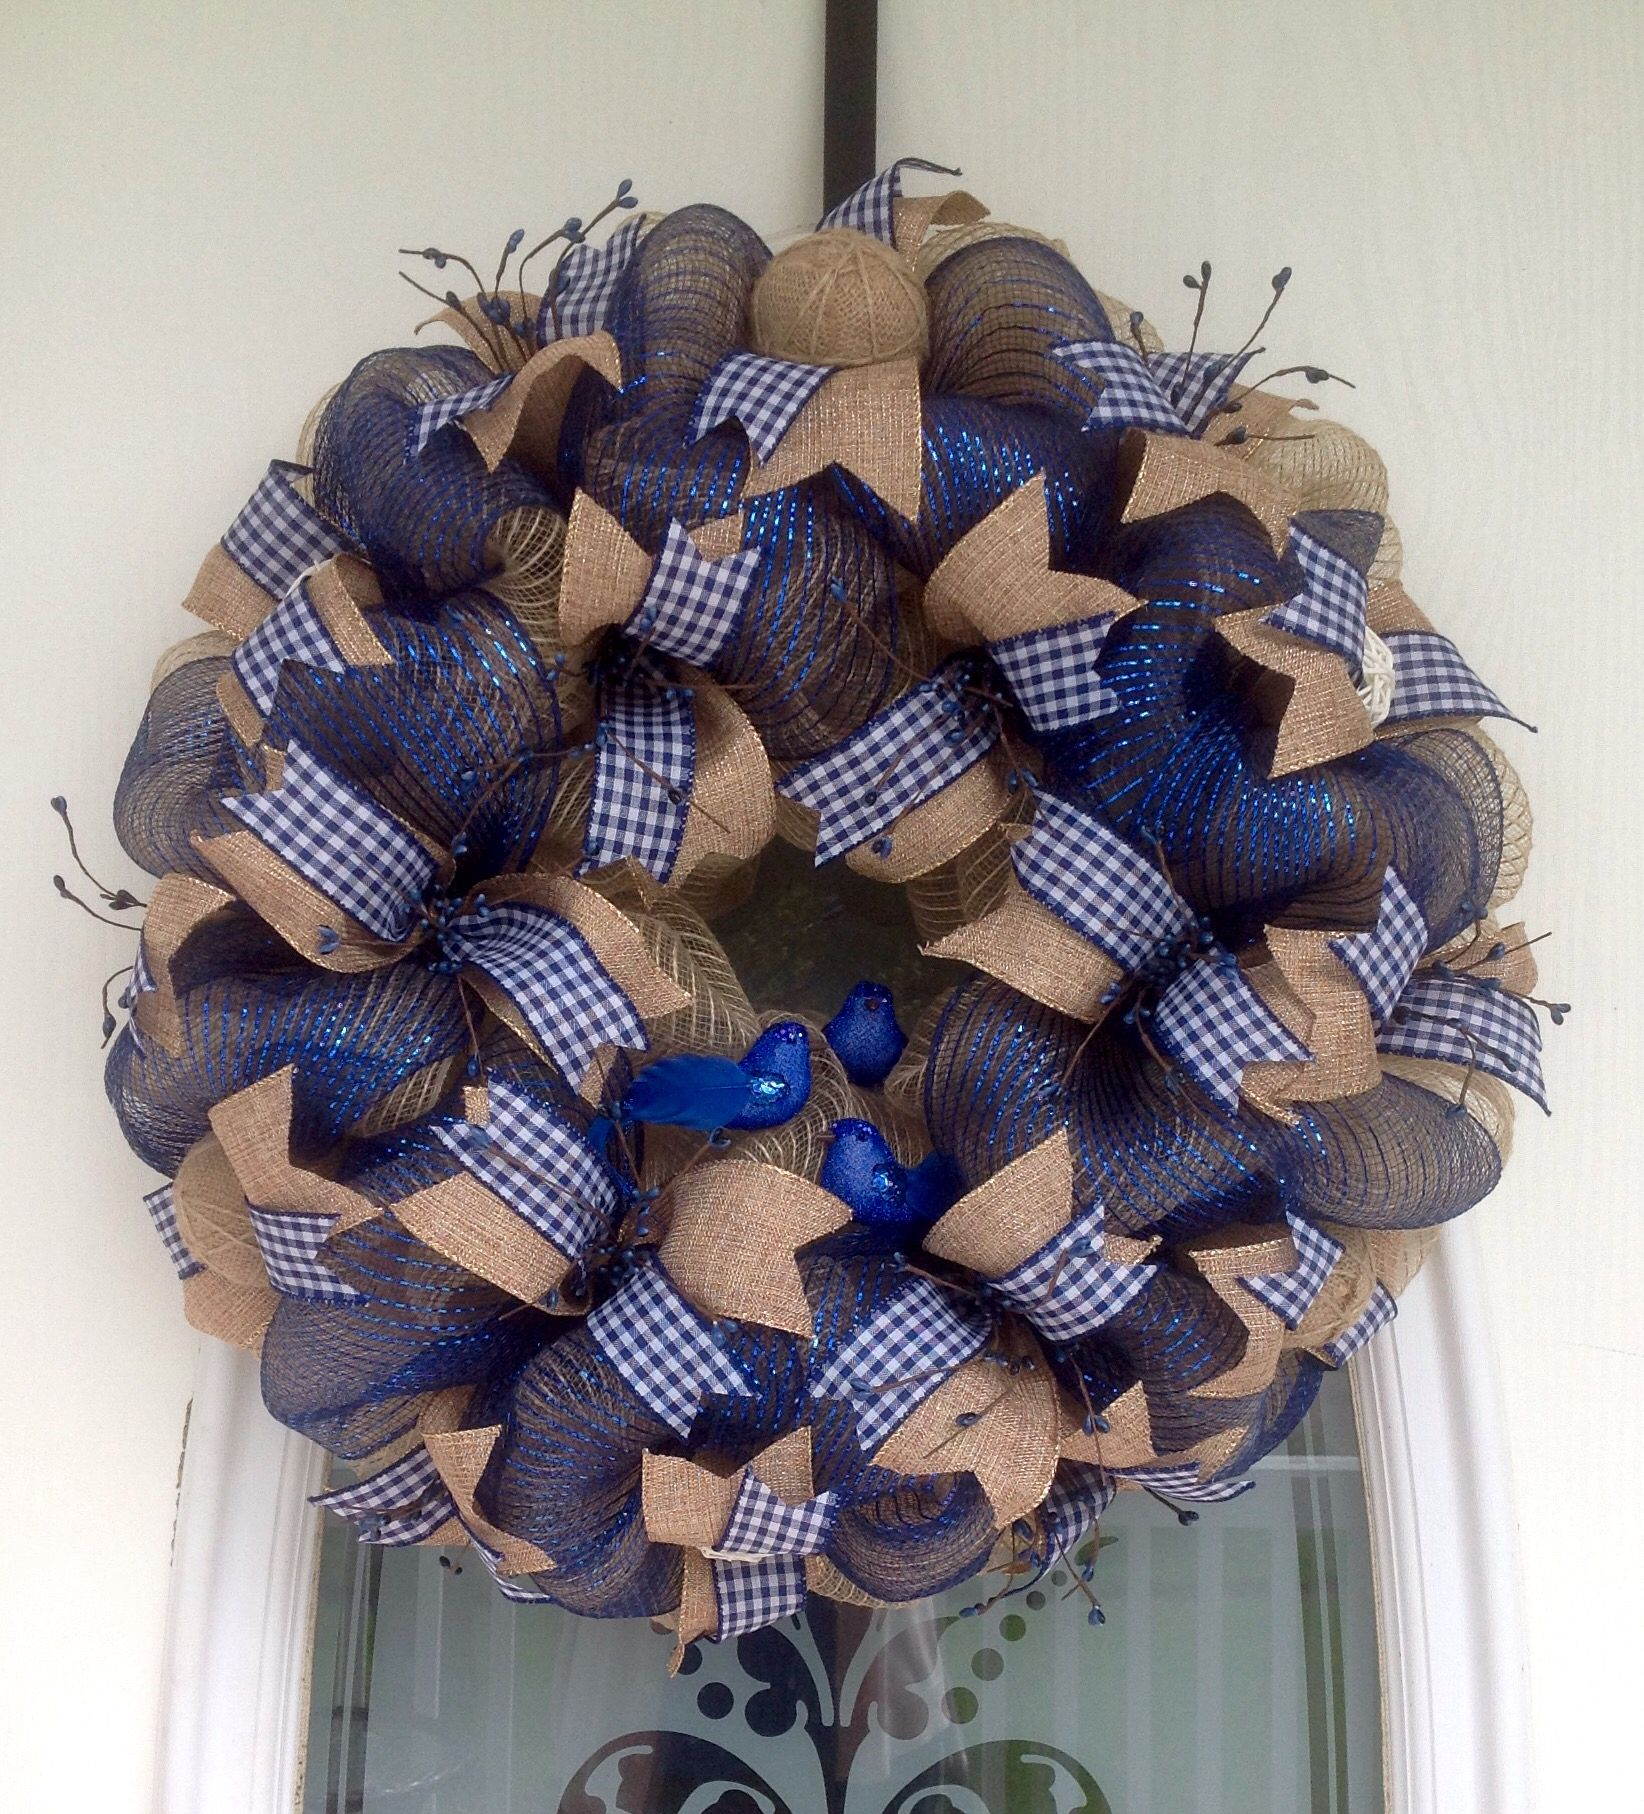 22 Tan Burlap And Navy Blue Deco Mesh Wreath With Country Ribbons